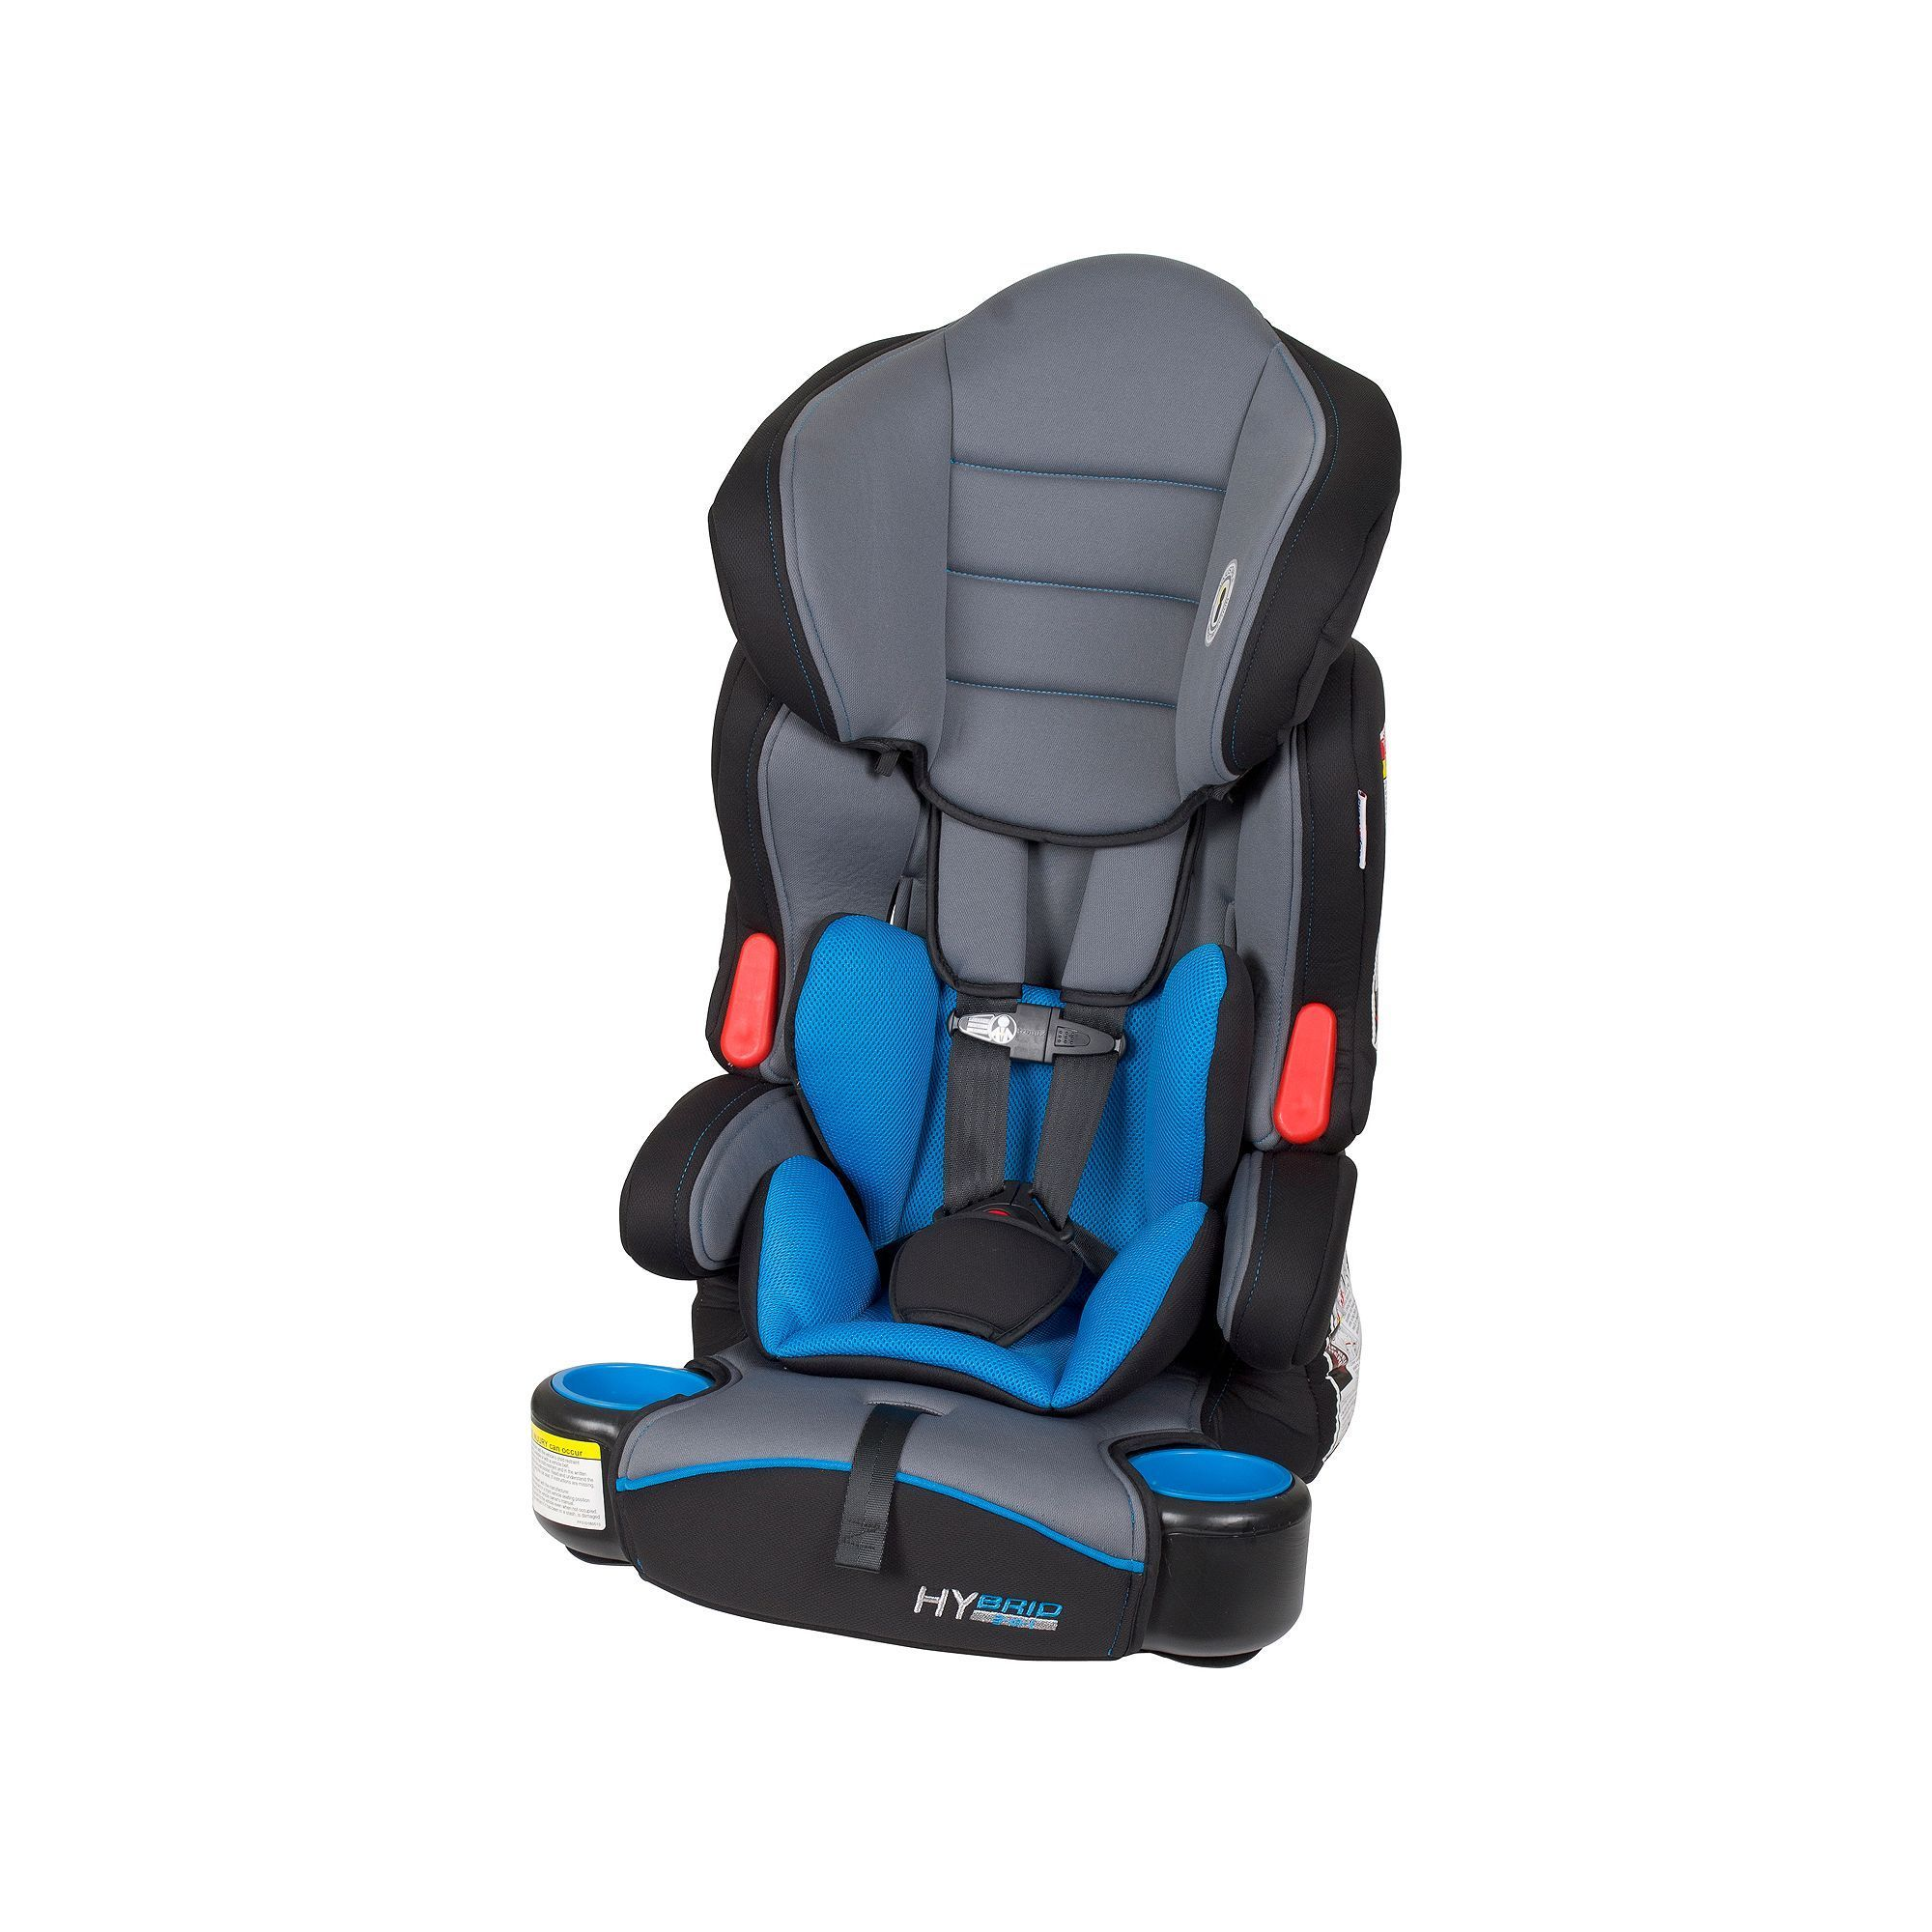 Baby Trend Hybrid Lx 3 In 1 Booster Car Seat Blue